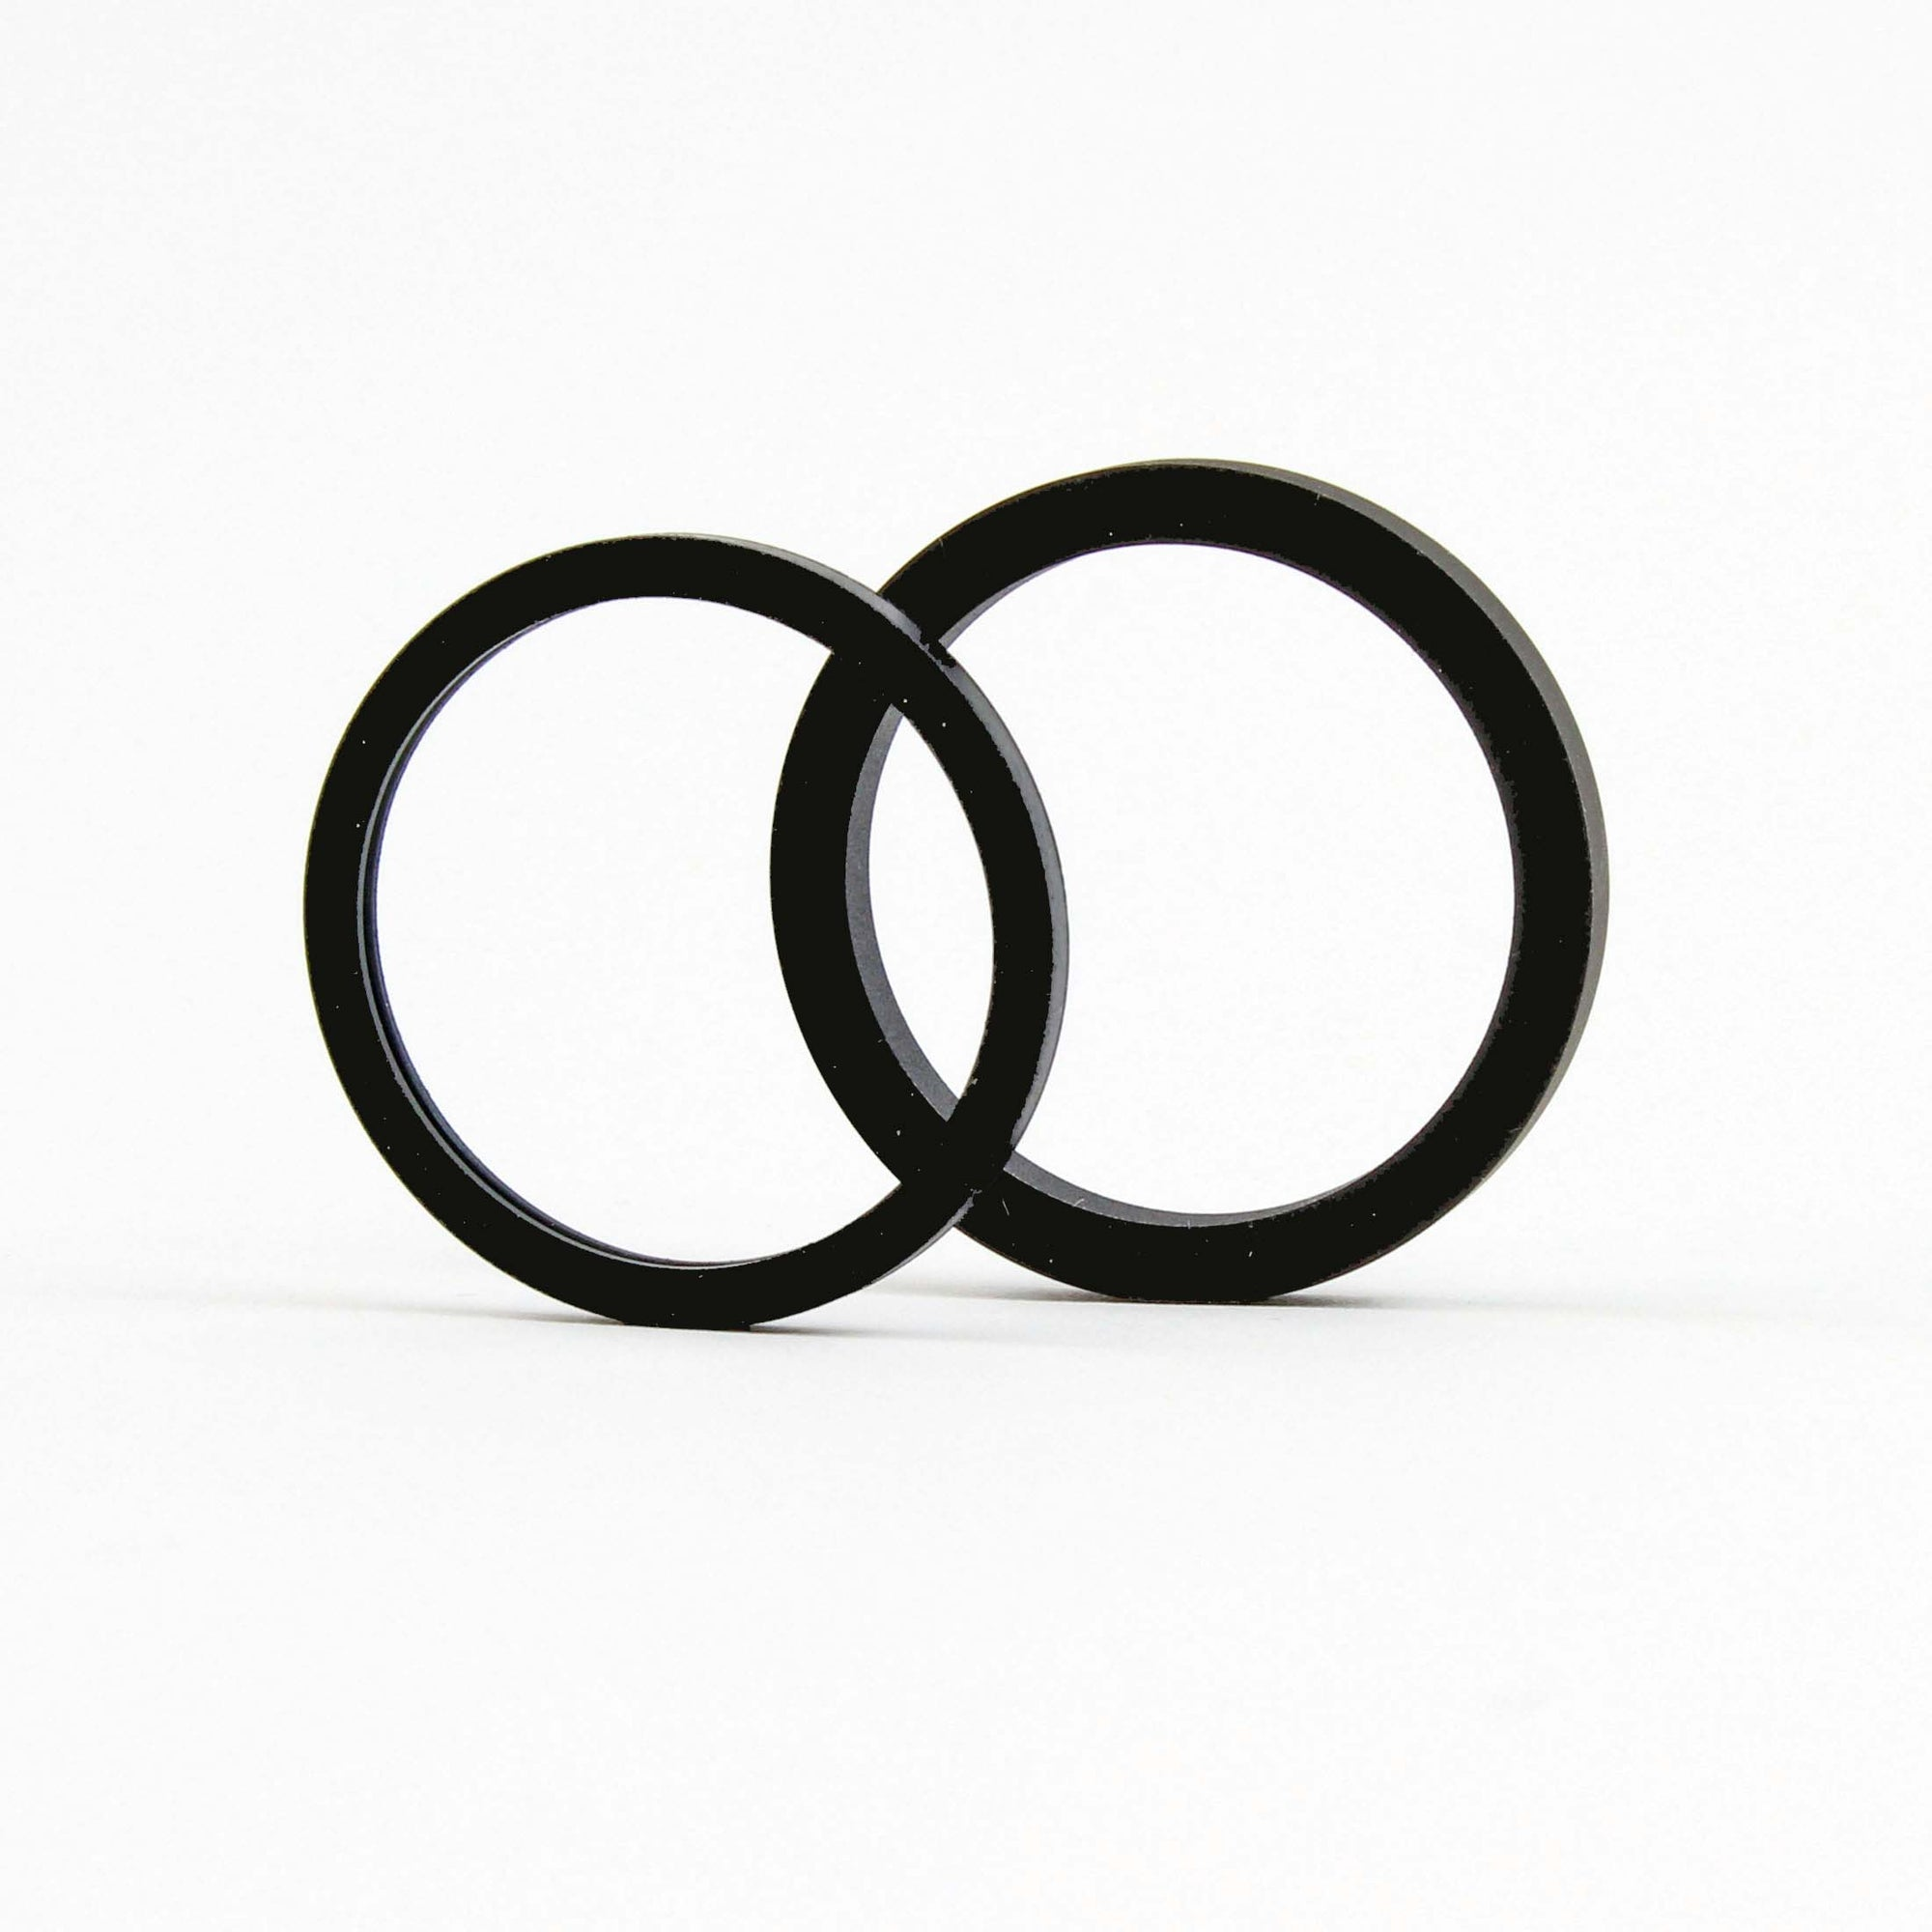 Internal Diameter (I.D) 27mm - Motorcycle Brake Caliper Seal set (Pressure seal - Dust Seal)